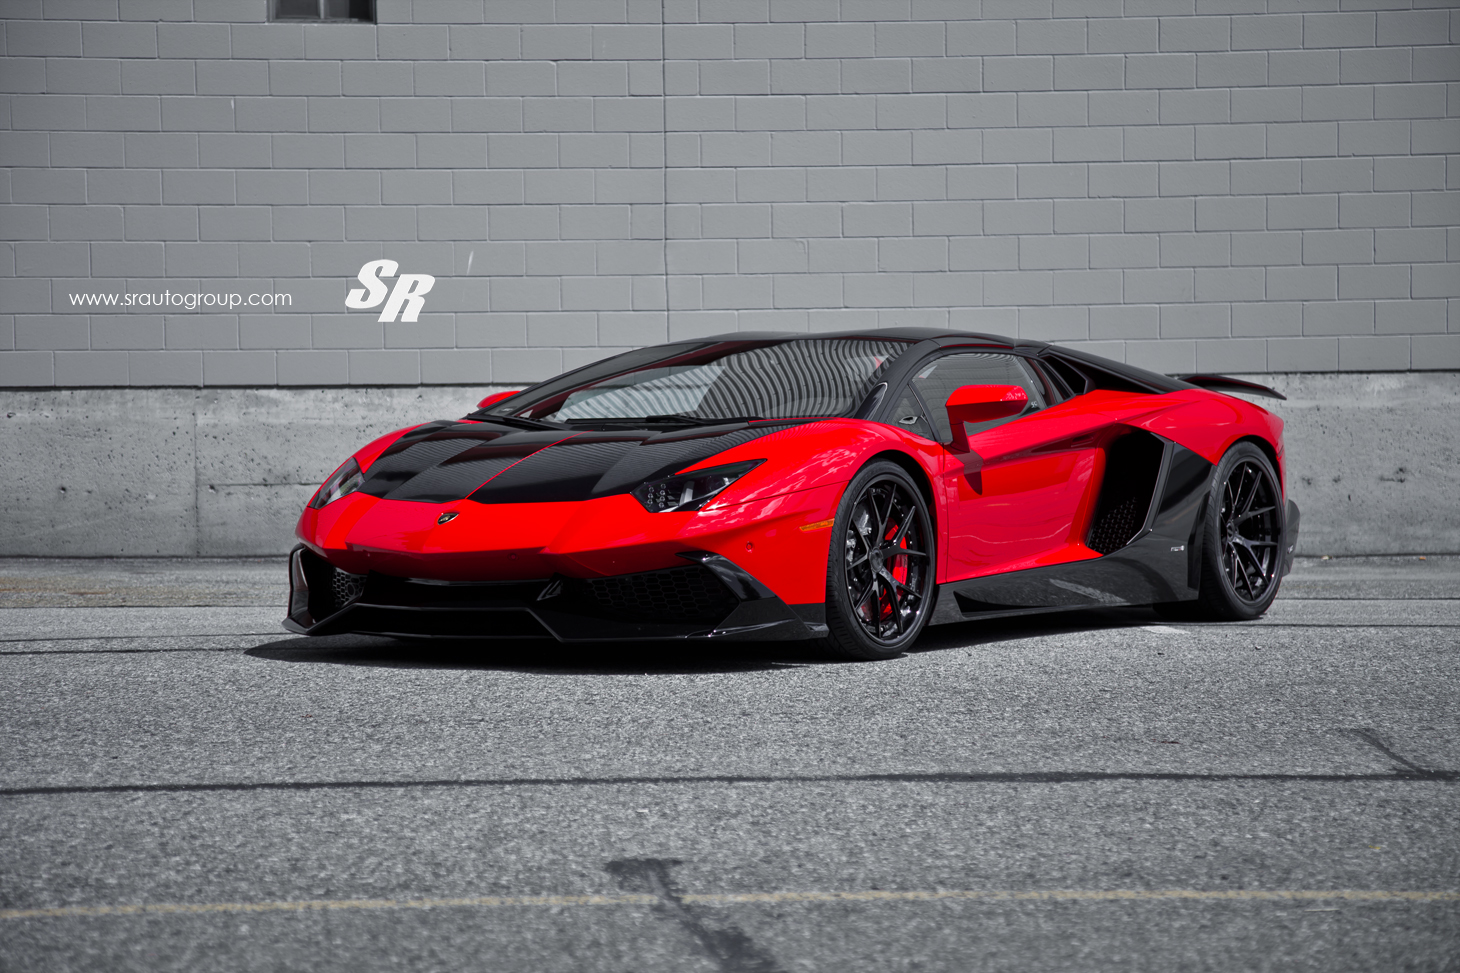 sr auto group reveals custom red lamborghini aventador. Black Bedroom Furniture Sets. Home Design Ideas